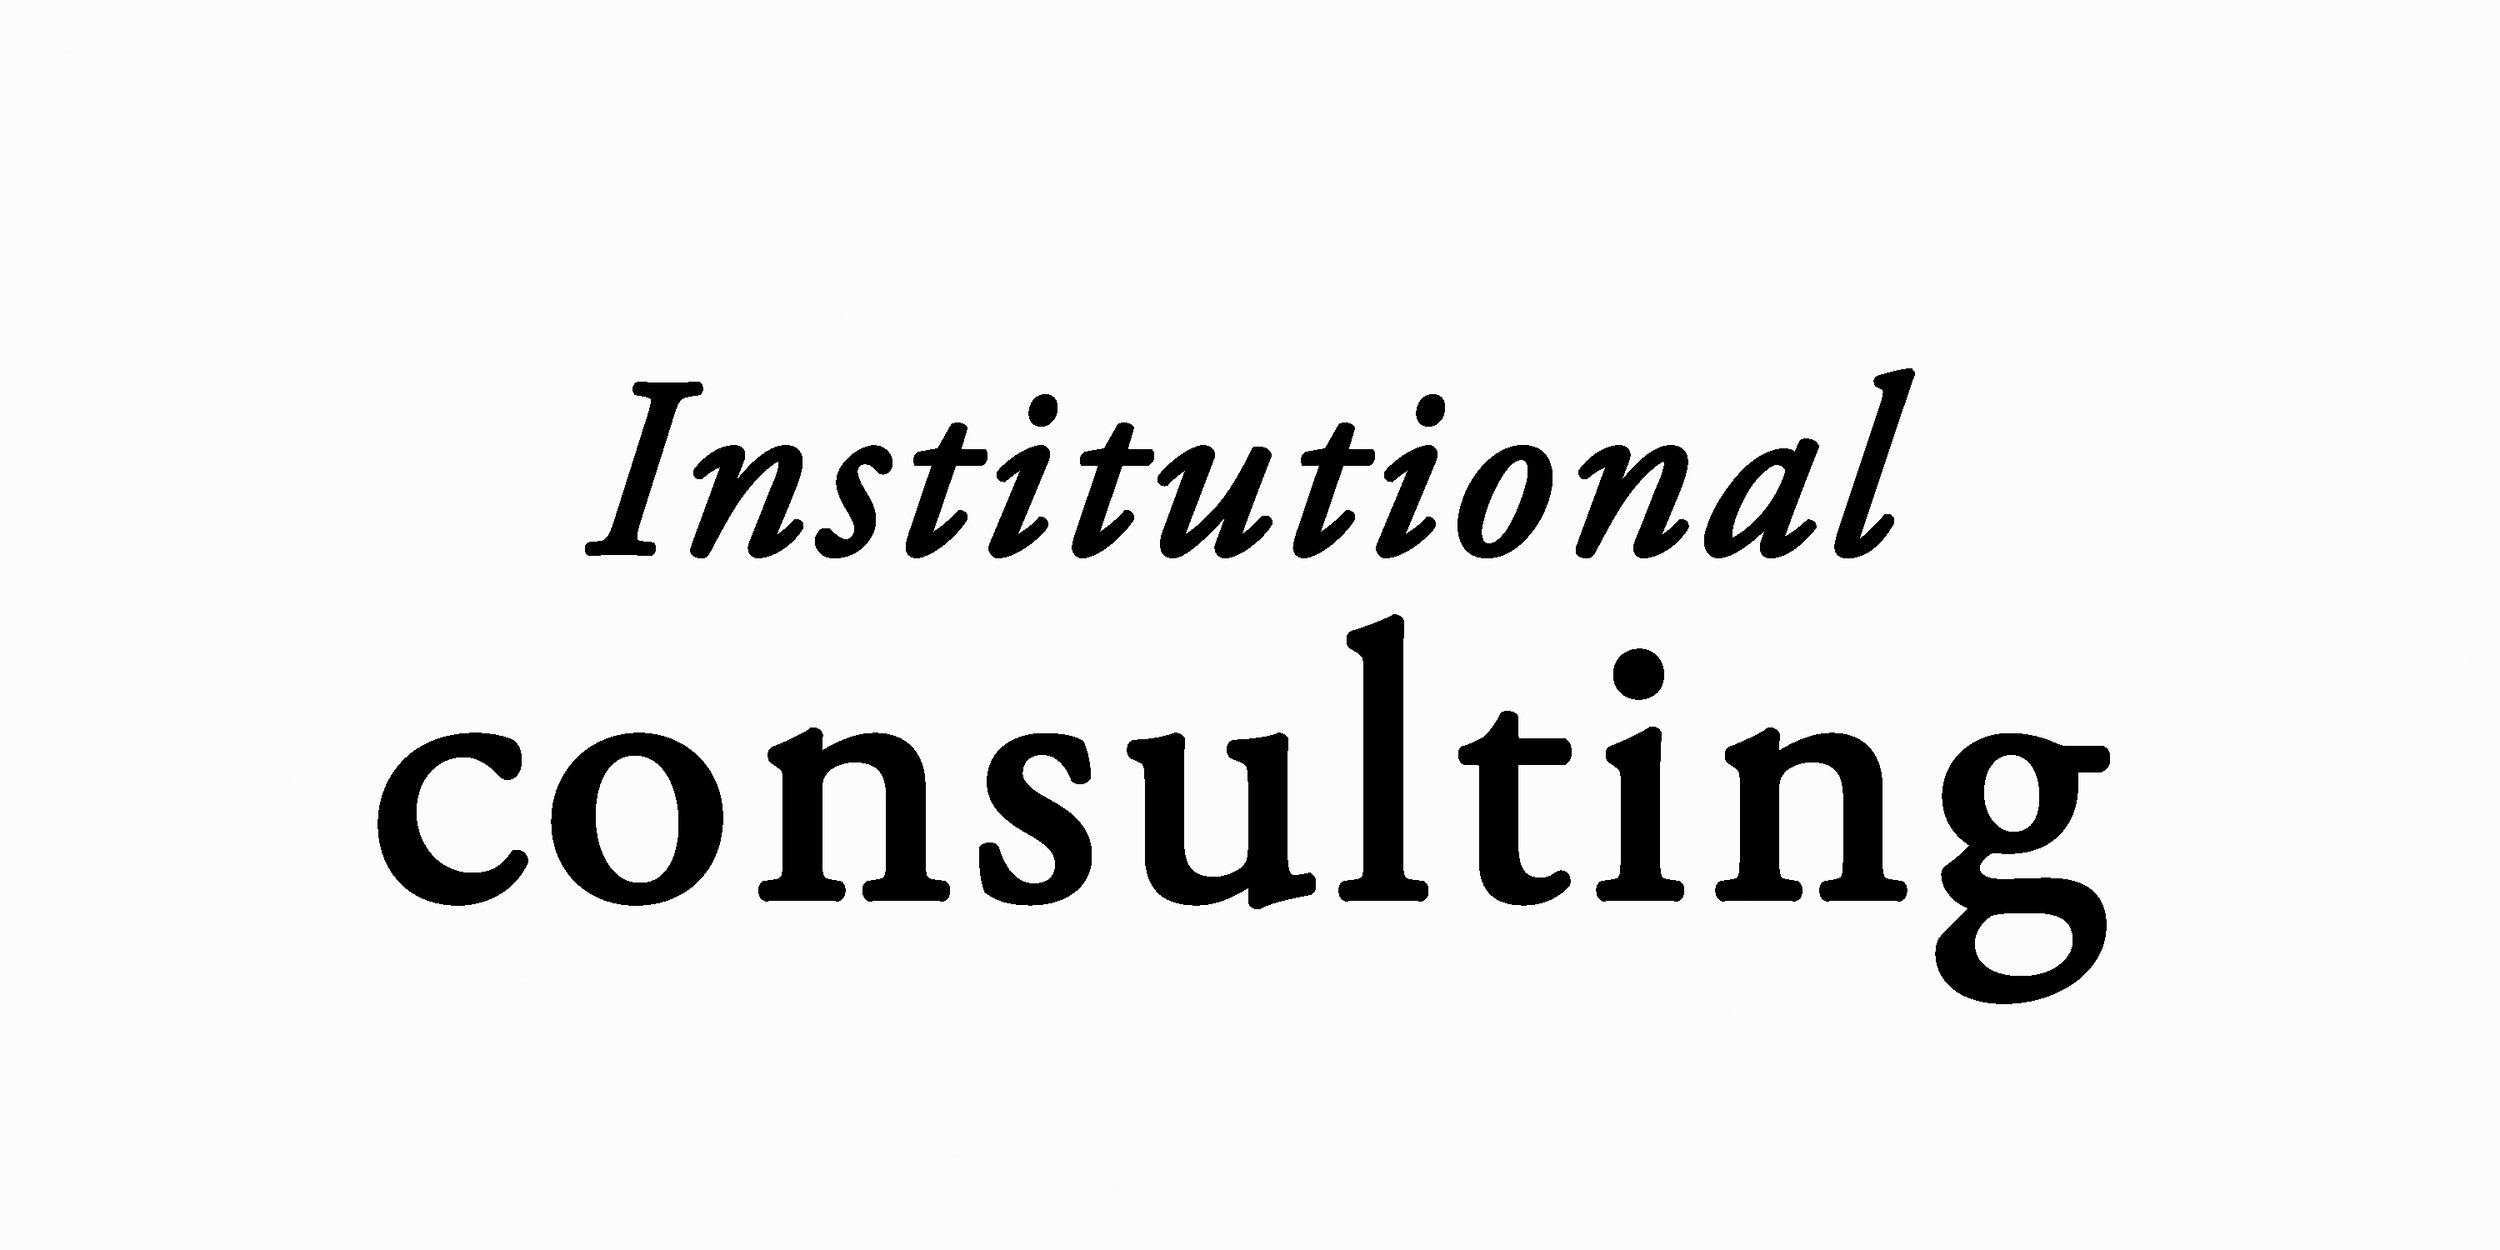 institutional consulting.jpg